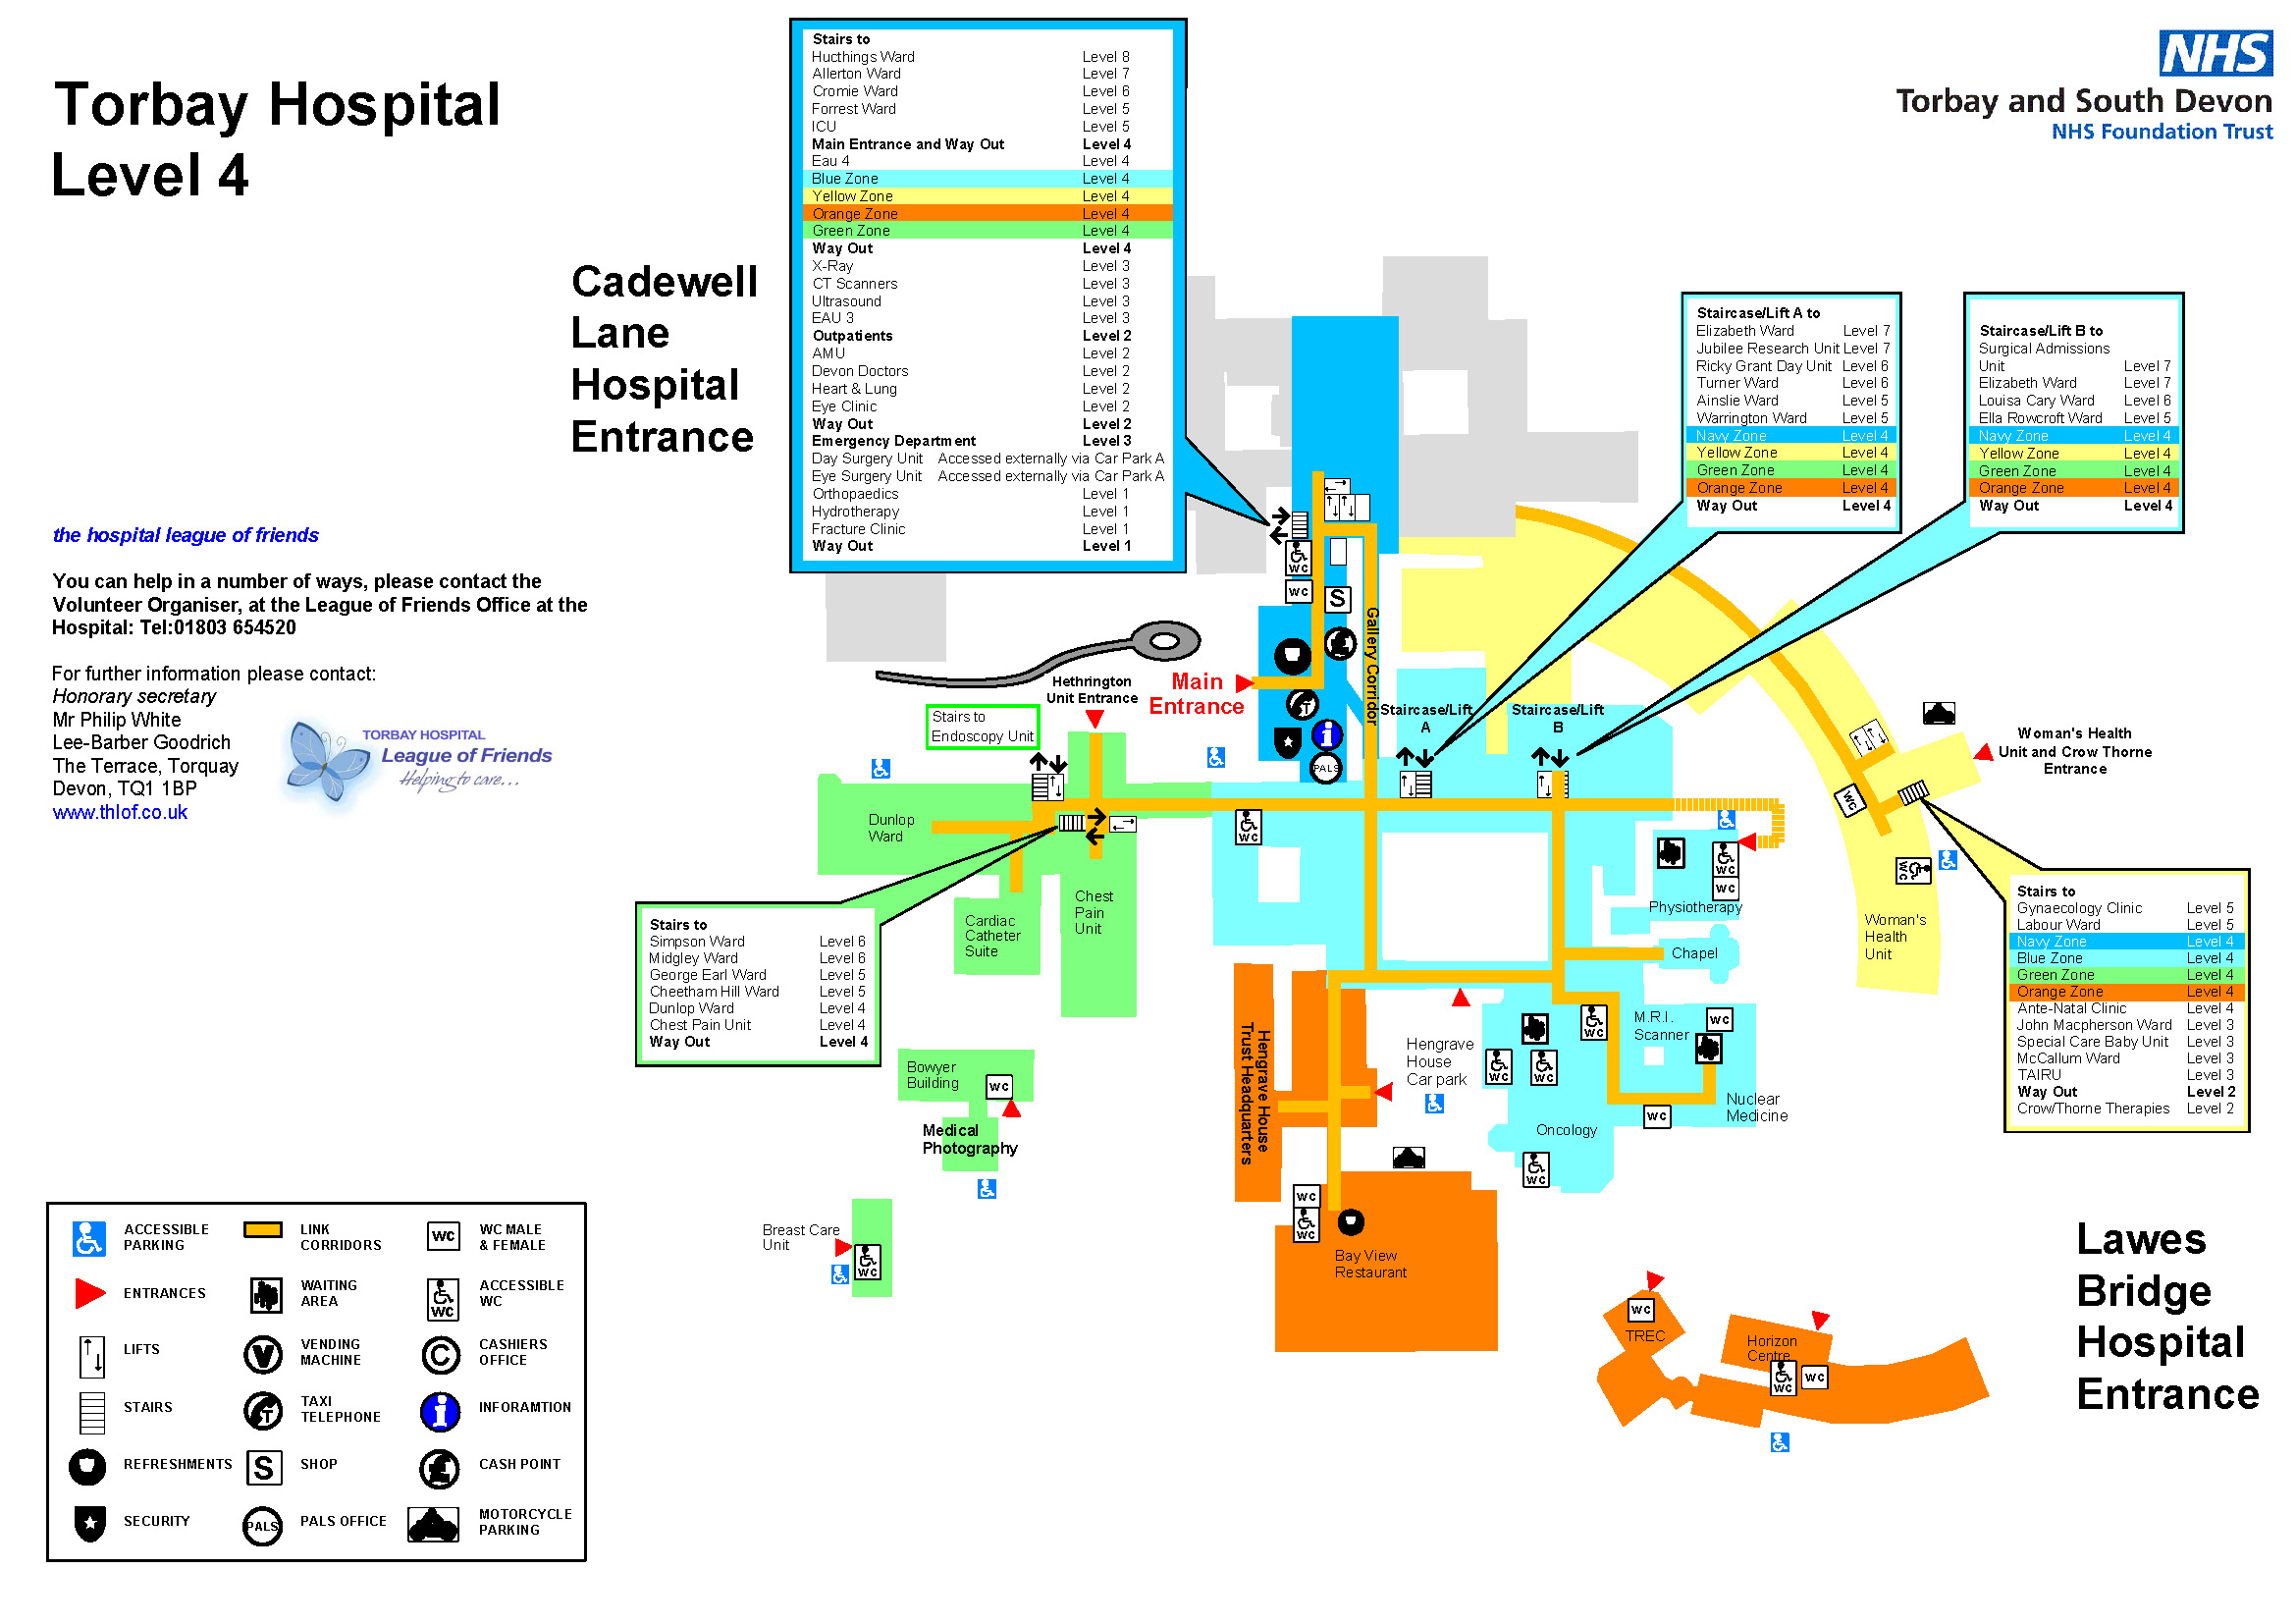 Torbay hospital maps torbay and south devon nhs foundation trust torbay hospital level 4 map malvernweather Gallery